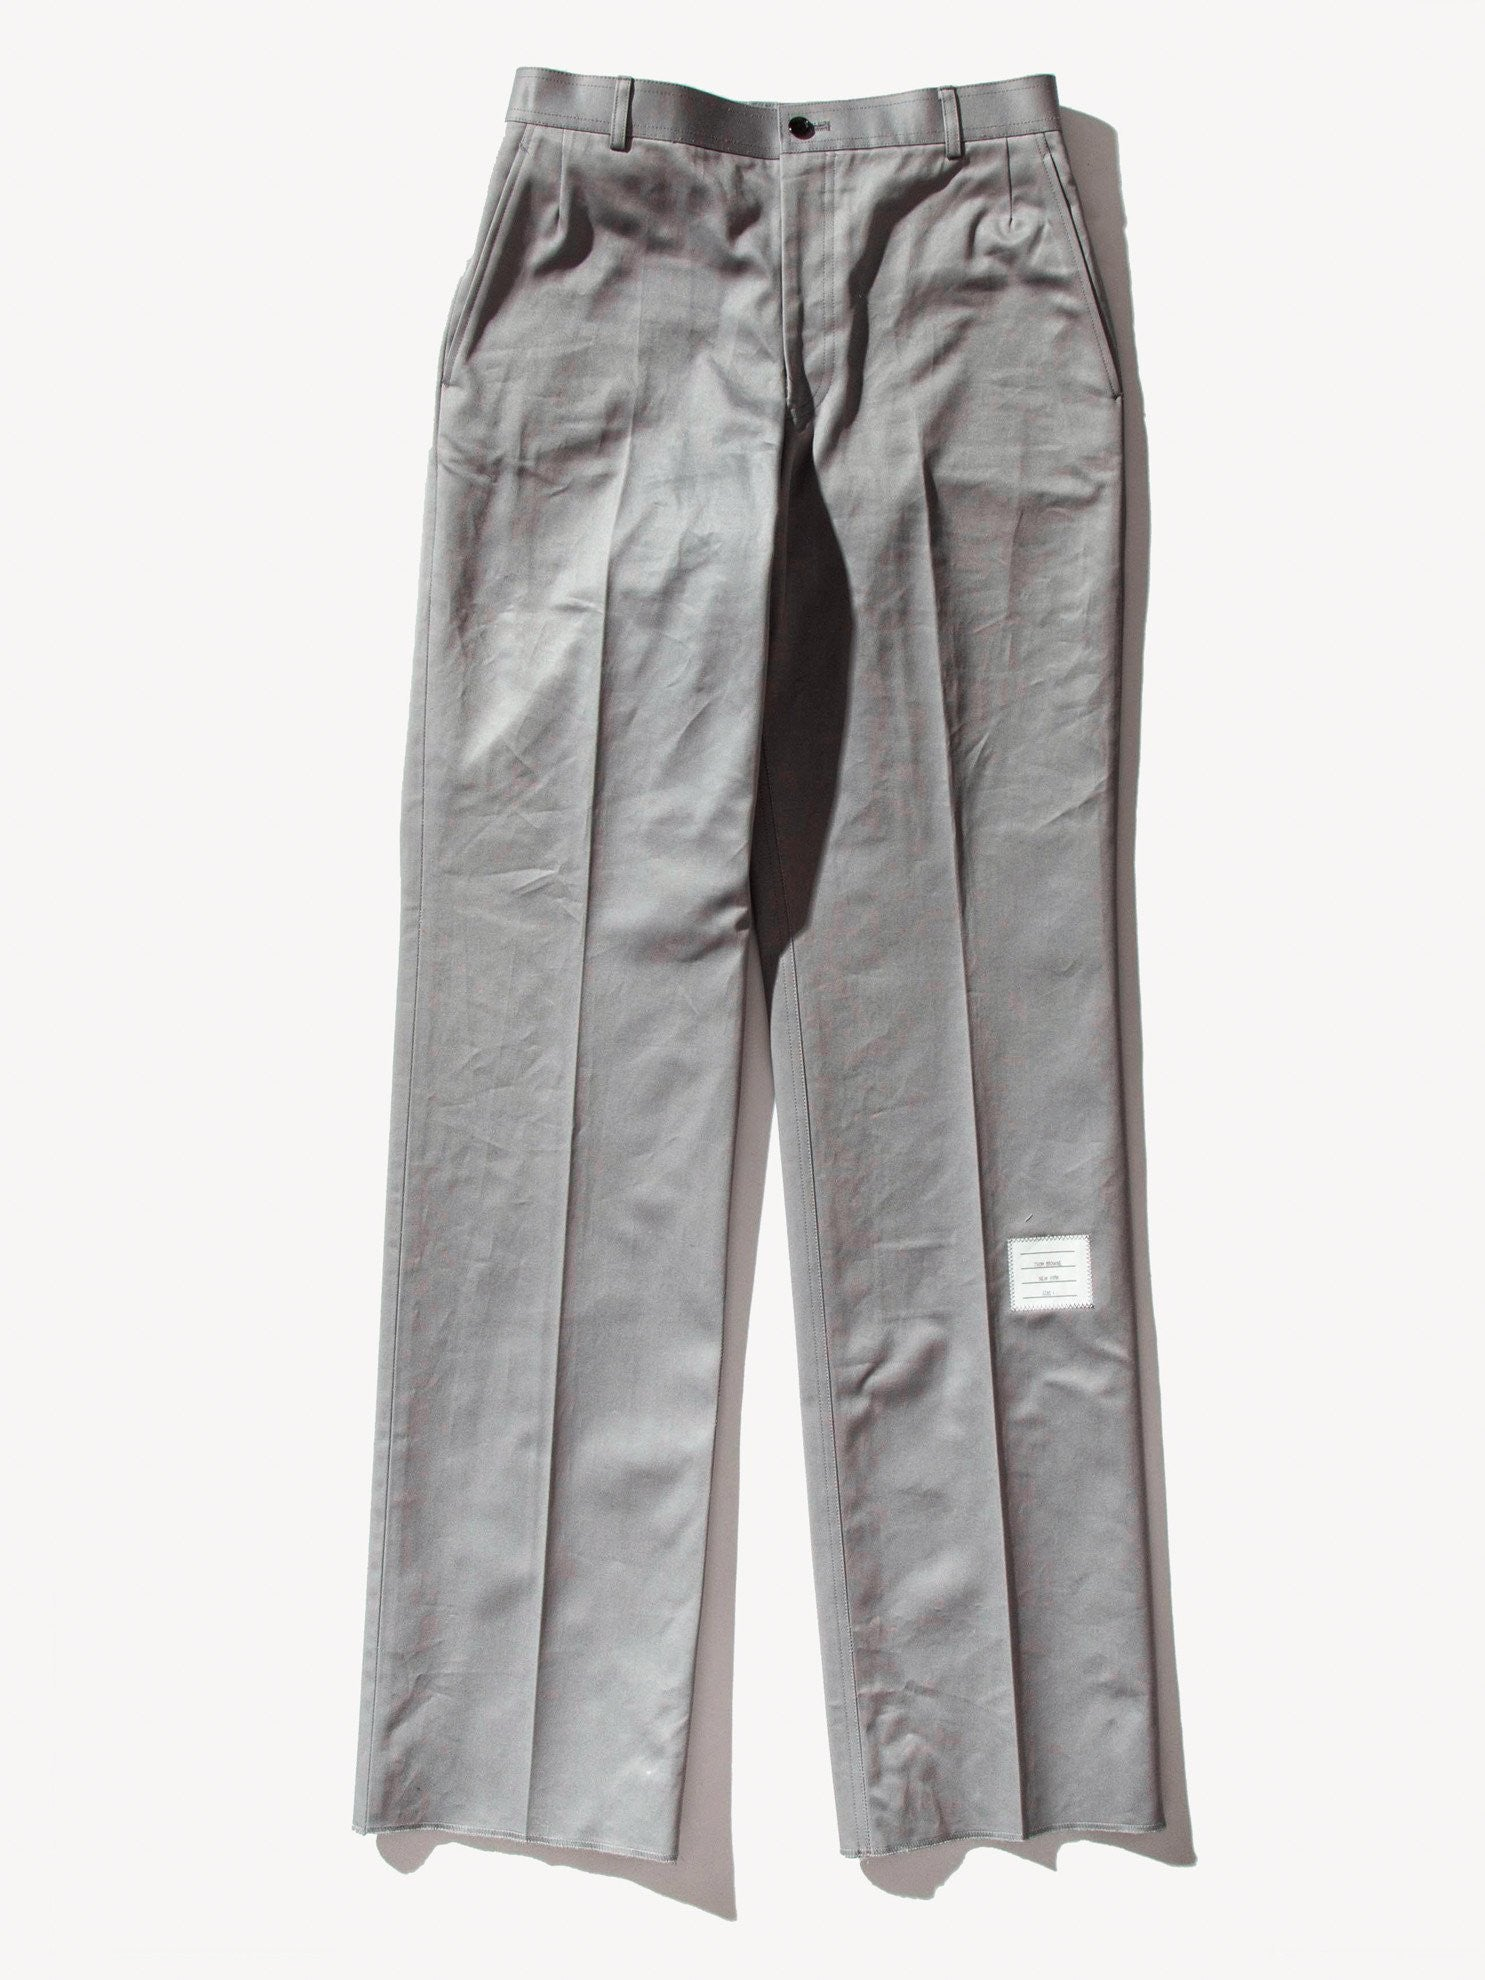 Med Grey Unconstructed Straight Leg Chino (Light Weight High Density Cotton Twill) 1